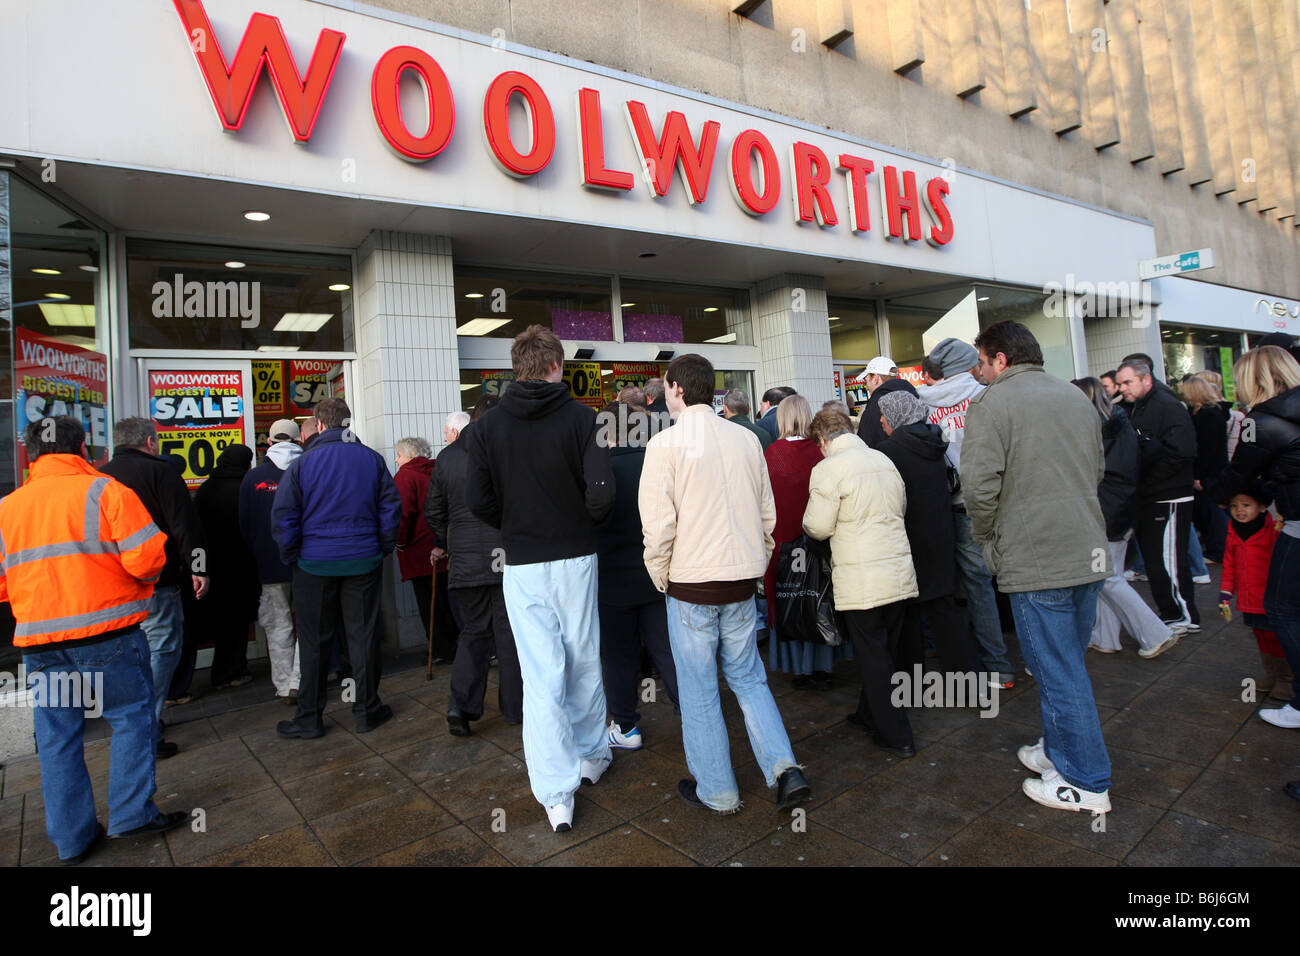 Woolworths Shoppers Stockfotos & Woolworths Shoppers Bilder